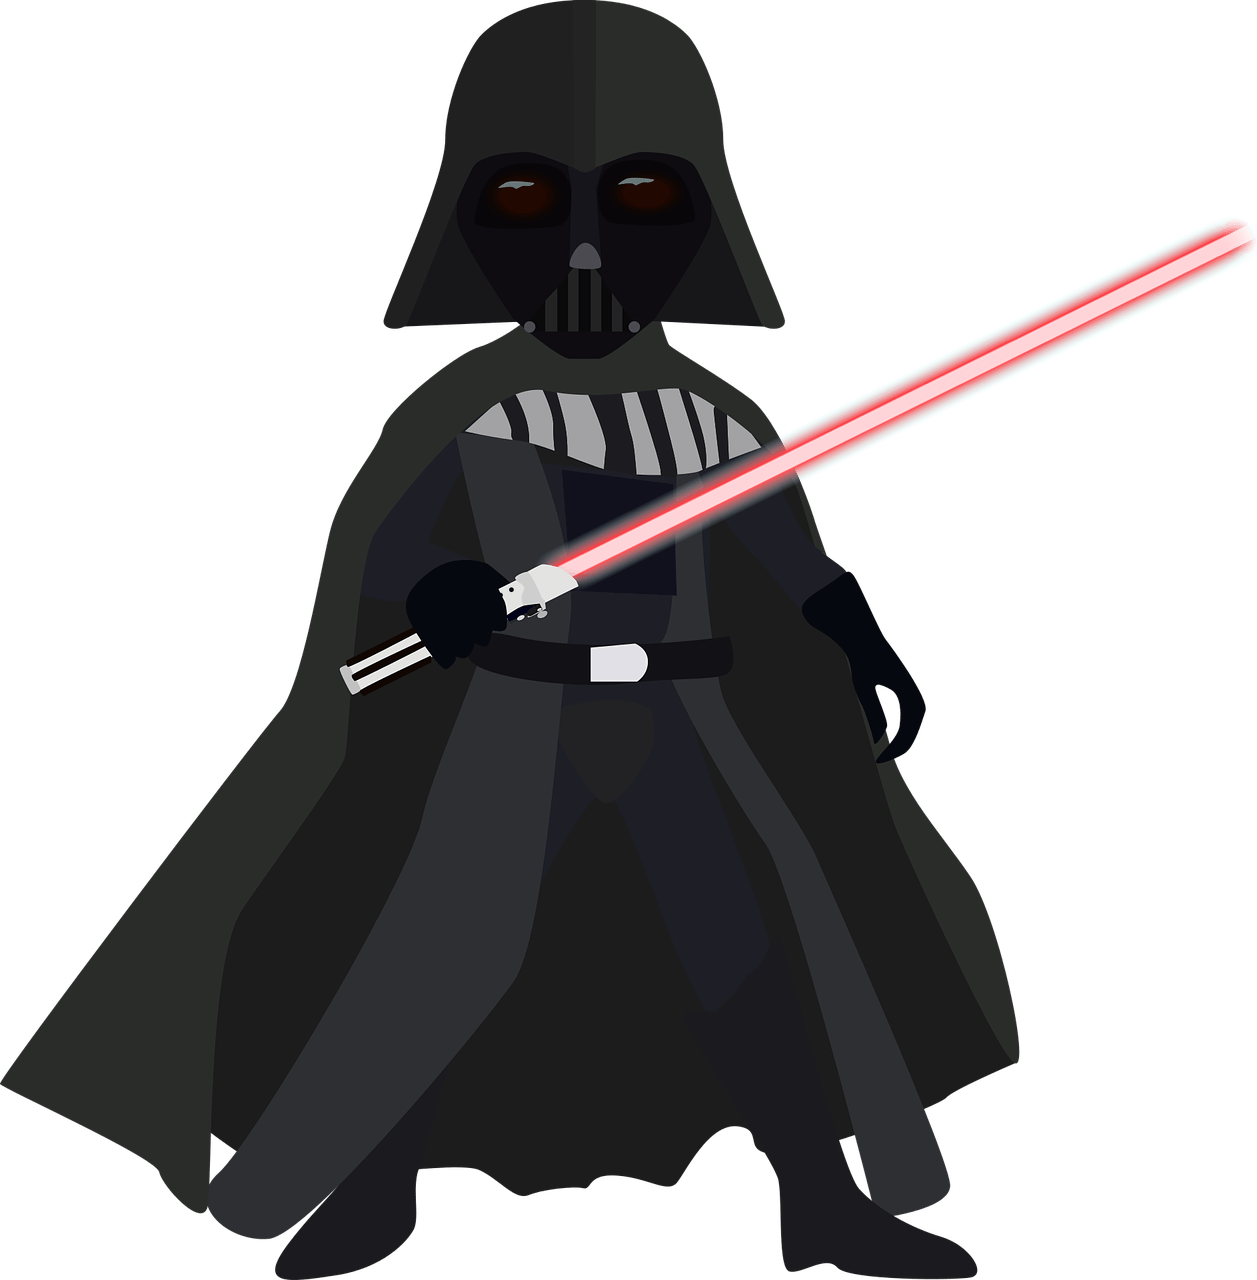 Star wars clipart transparent image freeuse Star Wars transparent PNG images - StickPNG image freeuse